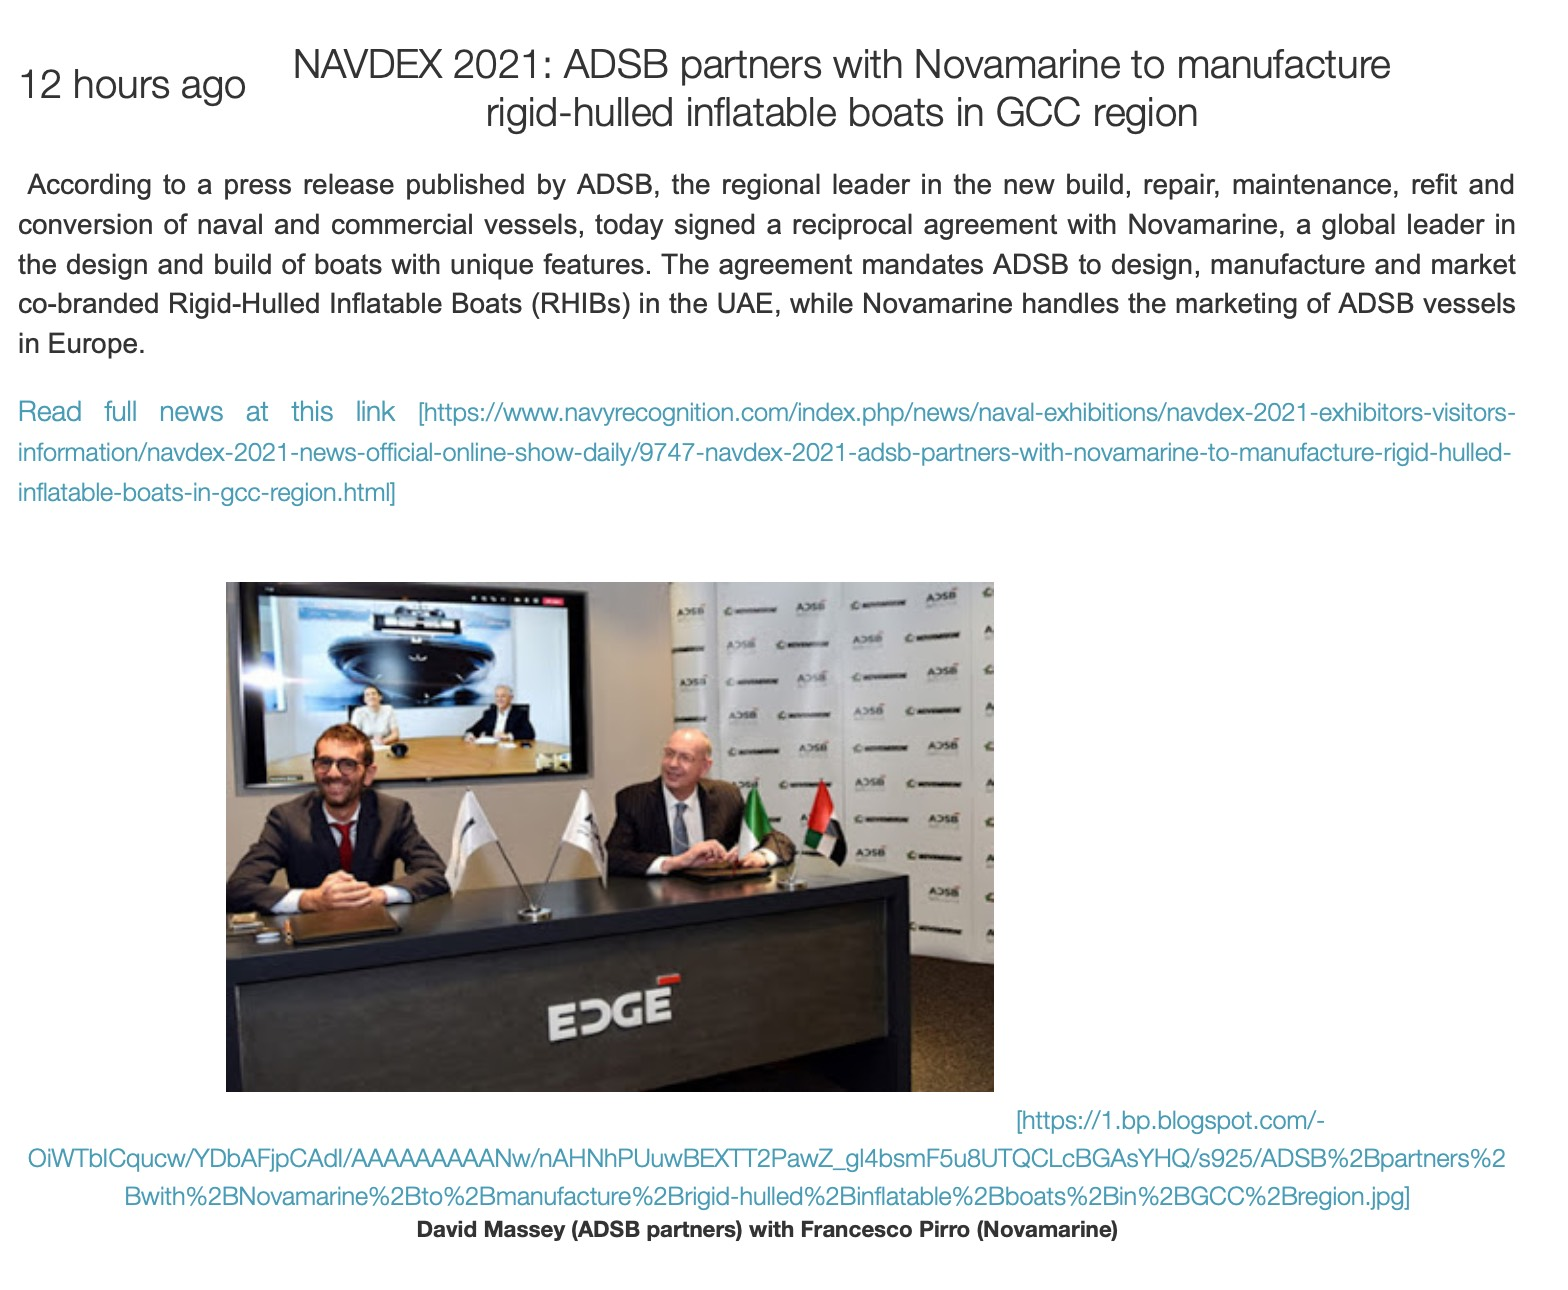 NAVDEX 2021_ ADSB partners with Novamarine to manufacture rigid-hulled inflatable boats in GCC region _ World Defence News